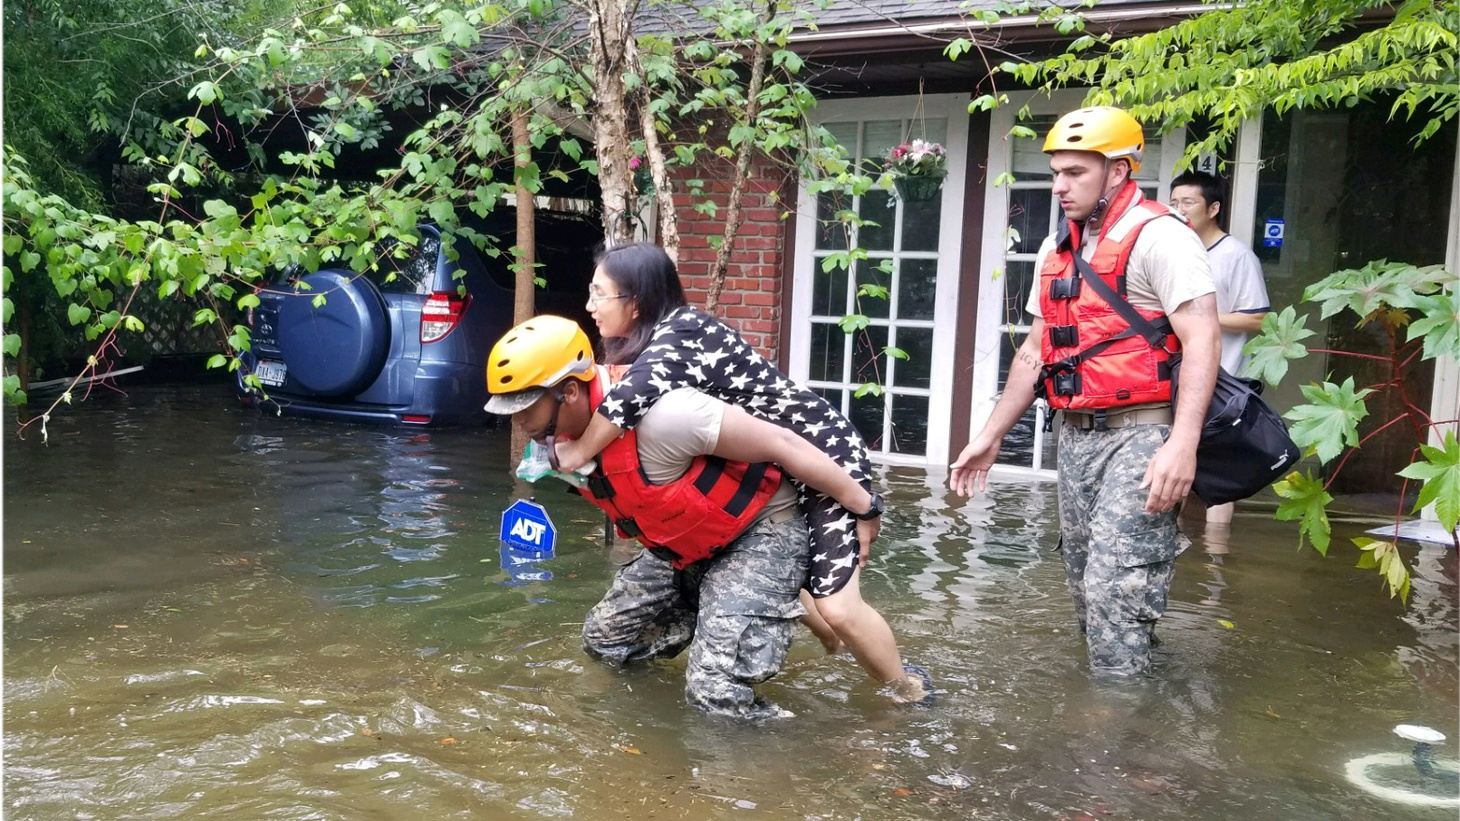 Tropical Storm Harvey is on par with Hurricane Katrina in terms of devastation. How has the official response been? We talk with a woman who was rescued, and a man who traveled from Louisiana to help people stranded on rooftops.